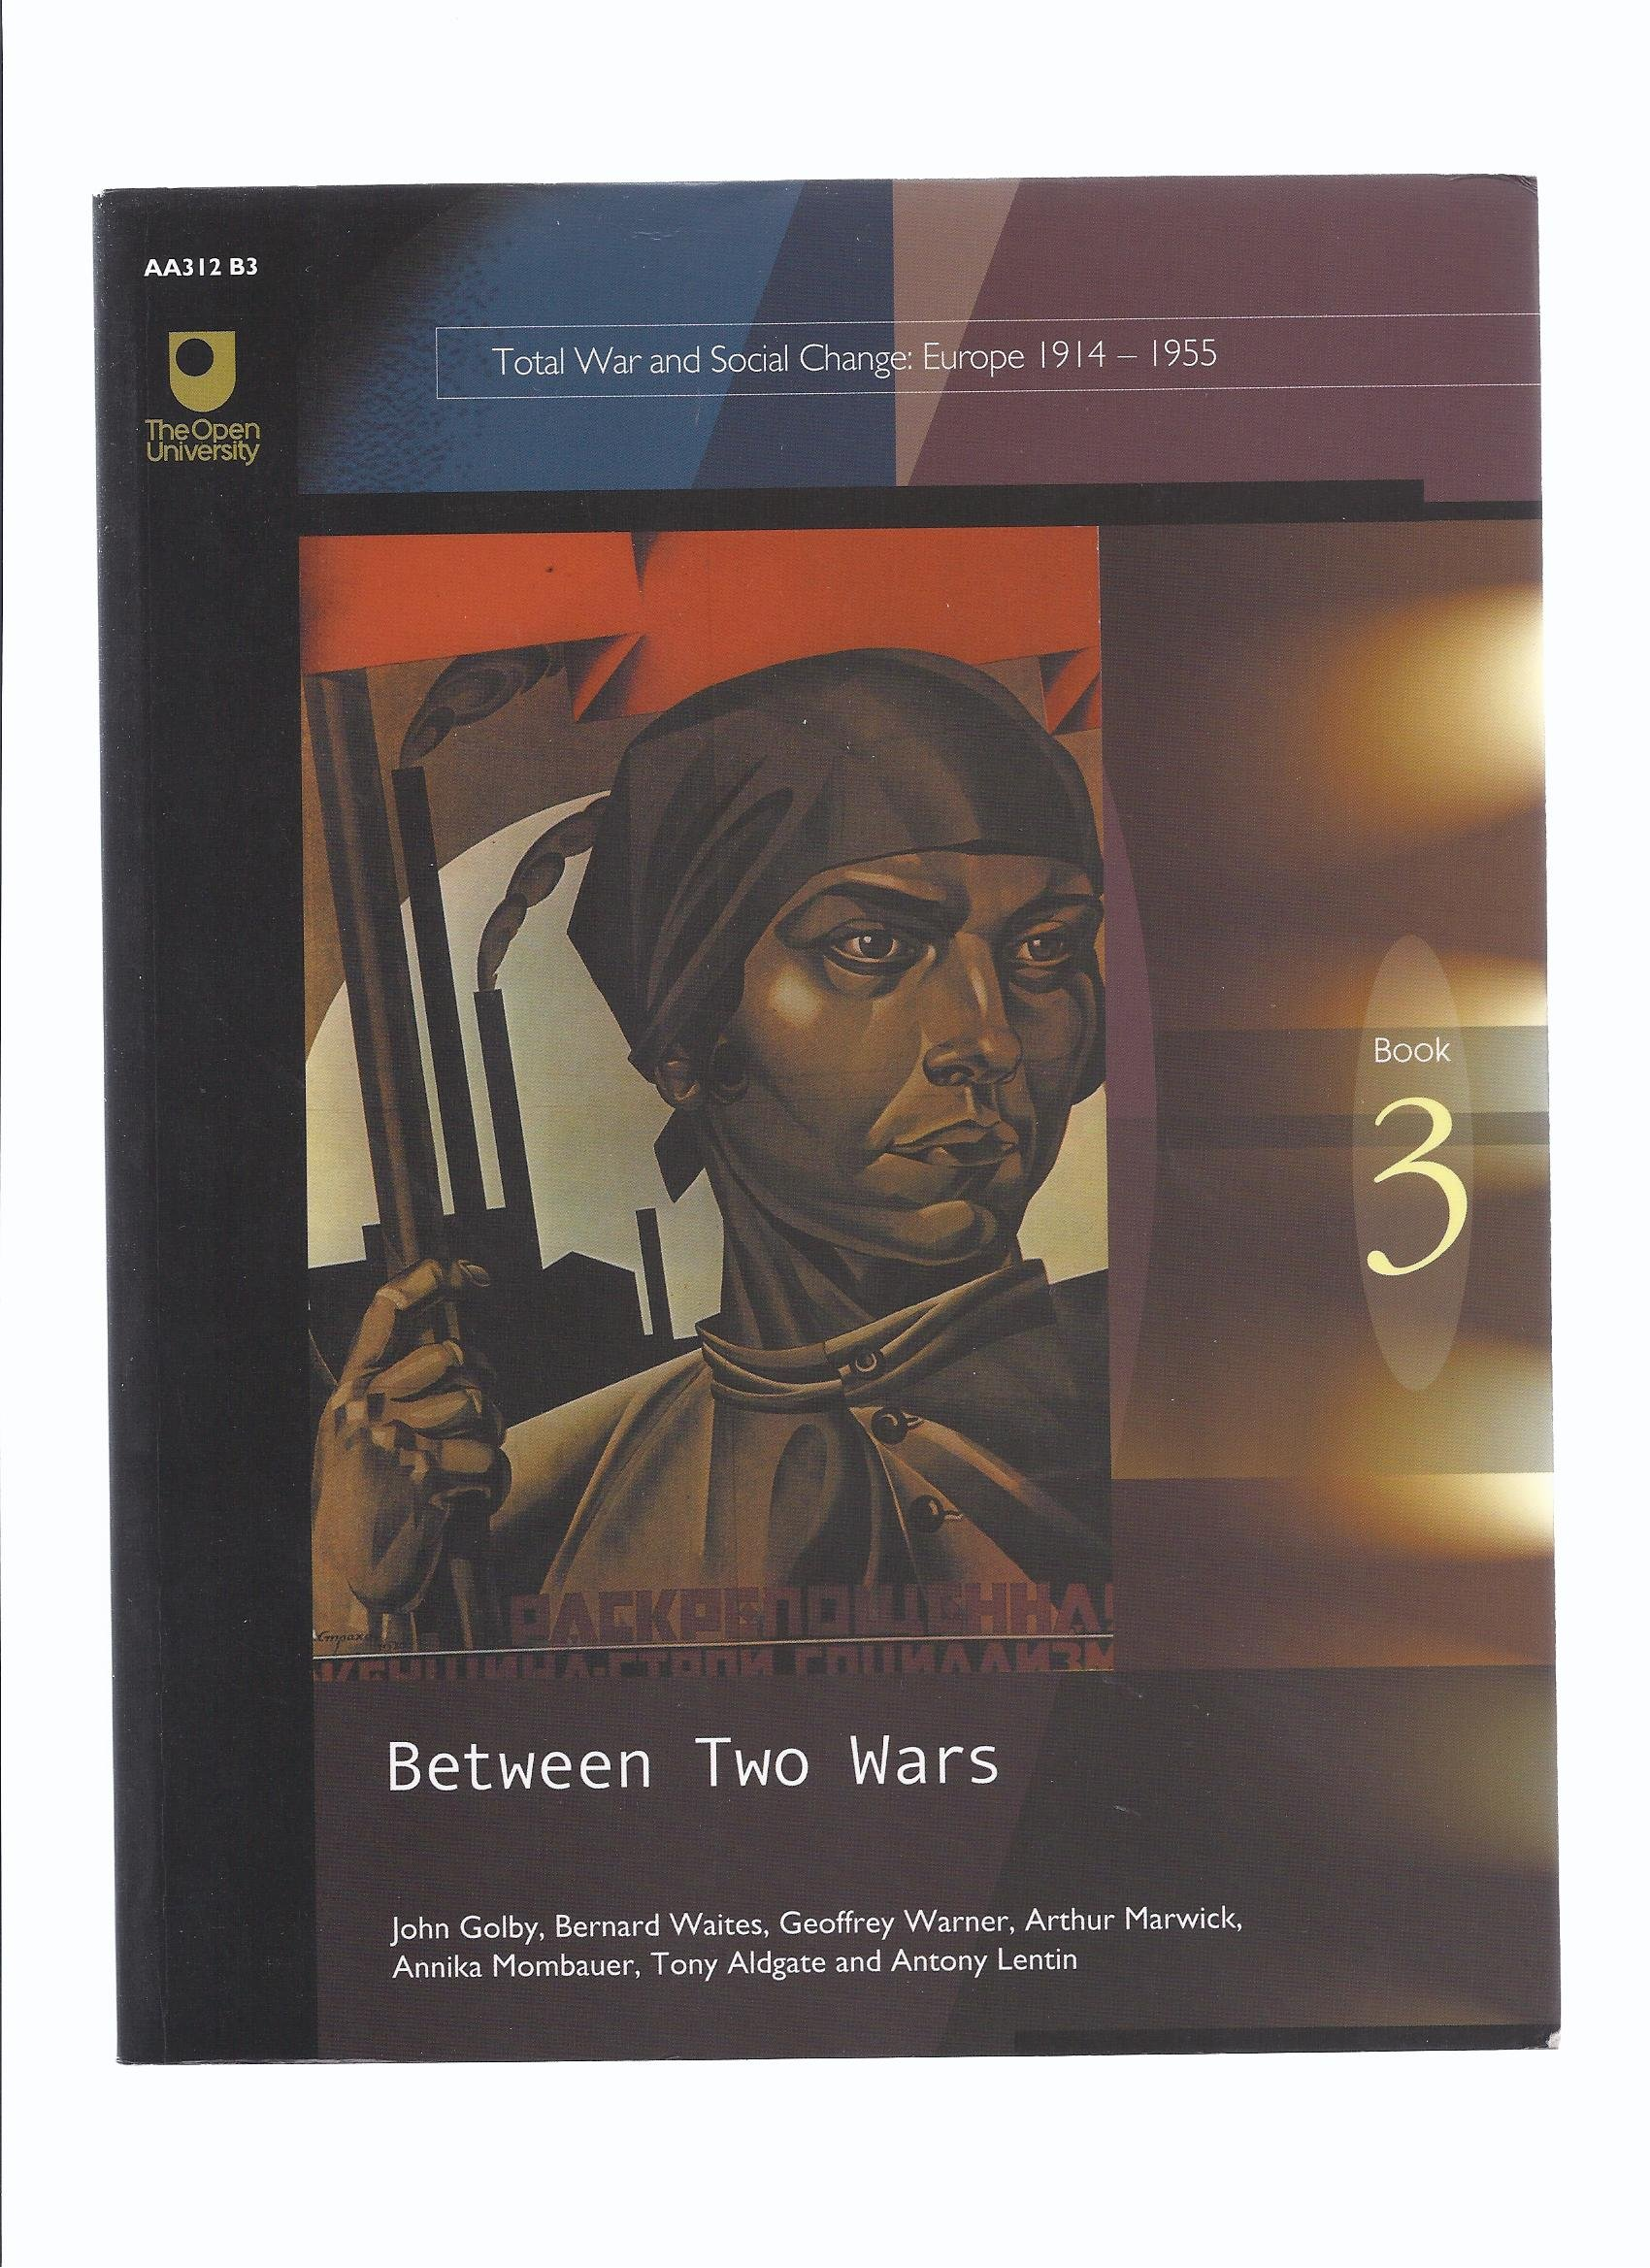 Between Two Wars: Course AA 312 (Total War and Social Change ; Europe 1914-1945) PDF